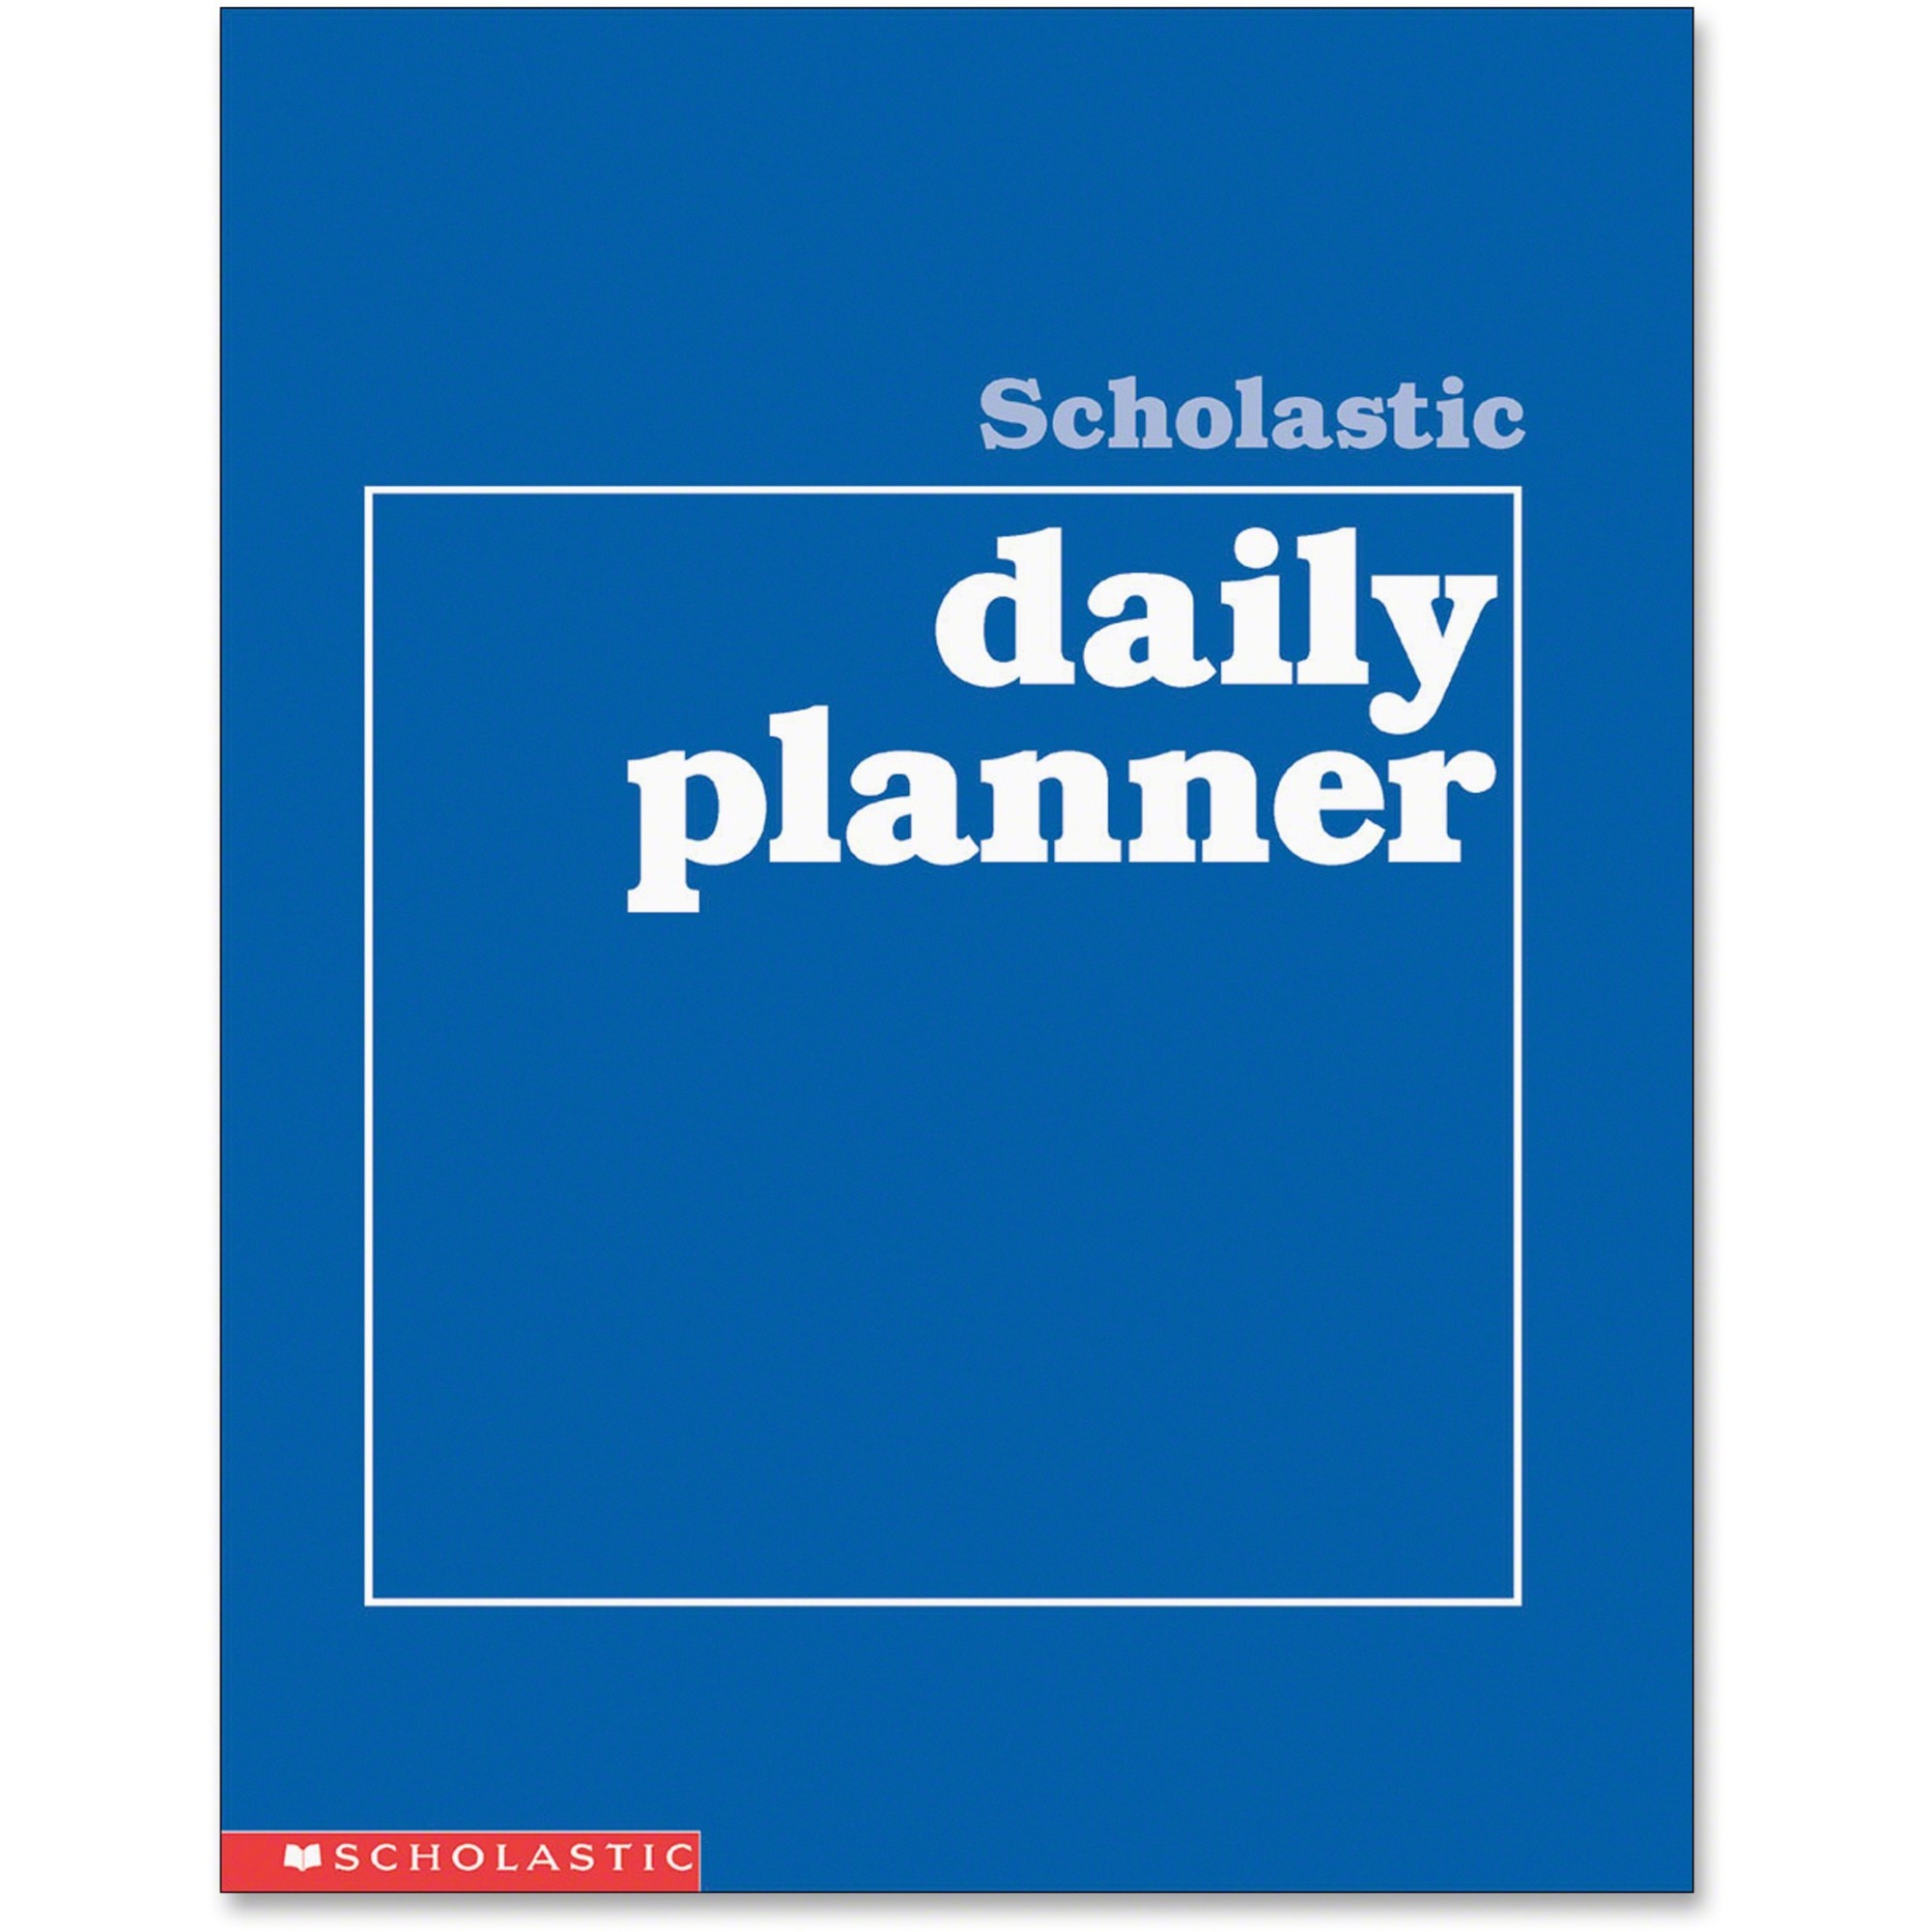 Scholastic Res. Grades K-6 Daily Planner - Academic - Daily, Weekly, Yearly - 8 1/2 X 11 White - Blue - Class Schedule